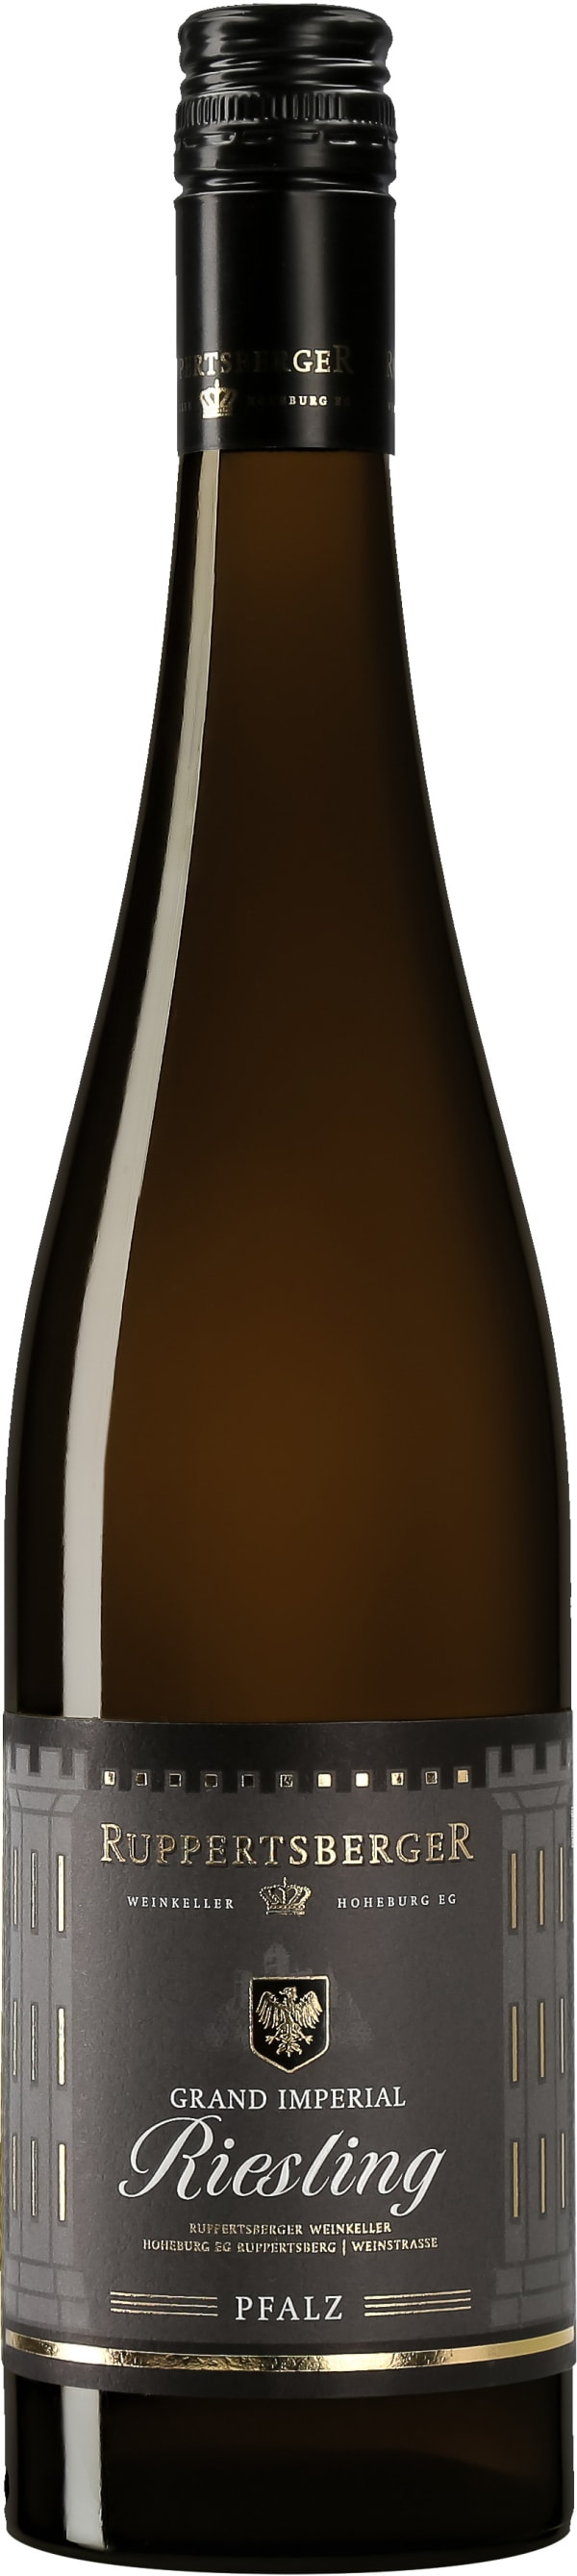 Ruppertsberger Grand Imperial Riesling 2020